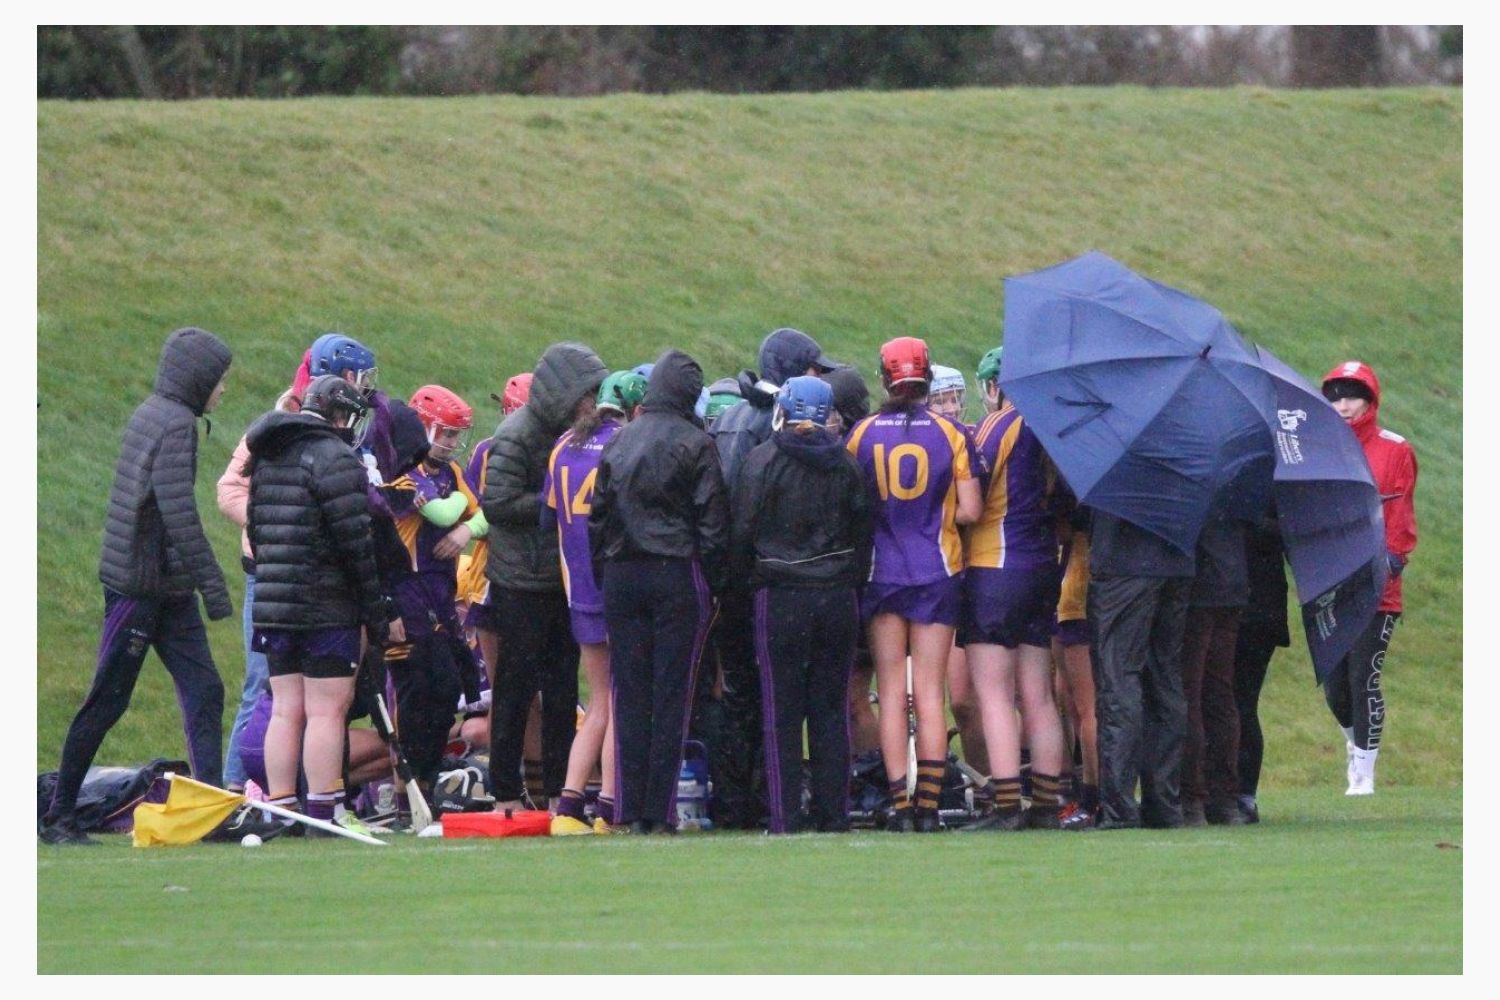 Biter end to Minor A Camogie Championship